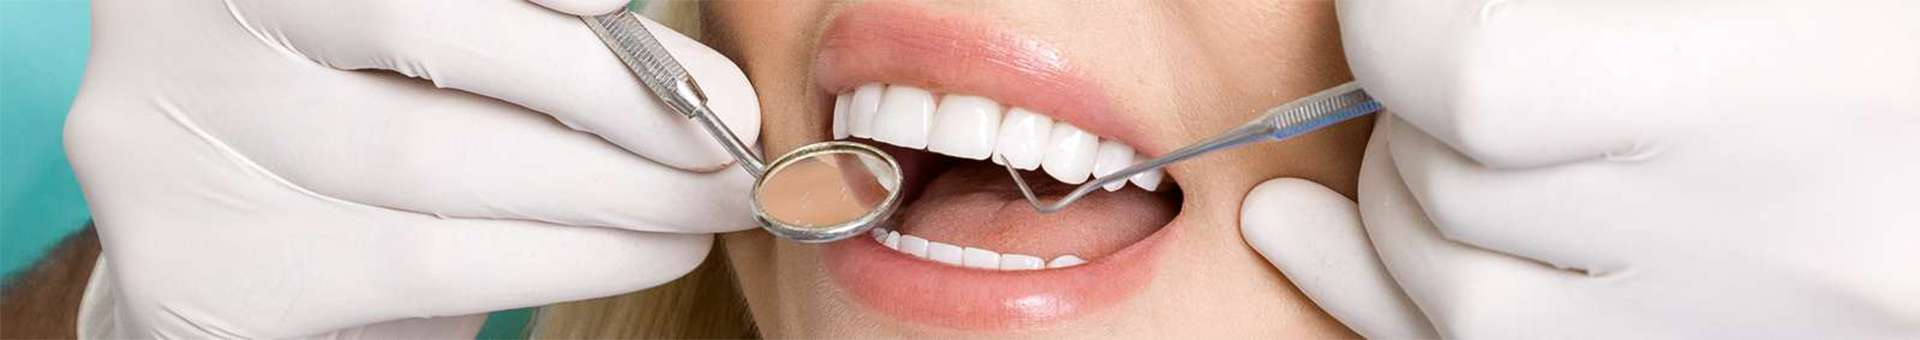 Search Whois information of domain names  .dentist